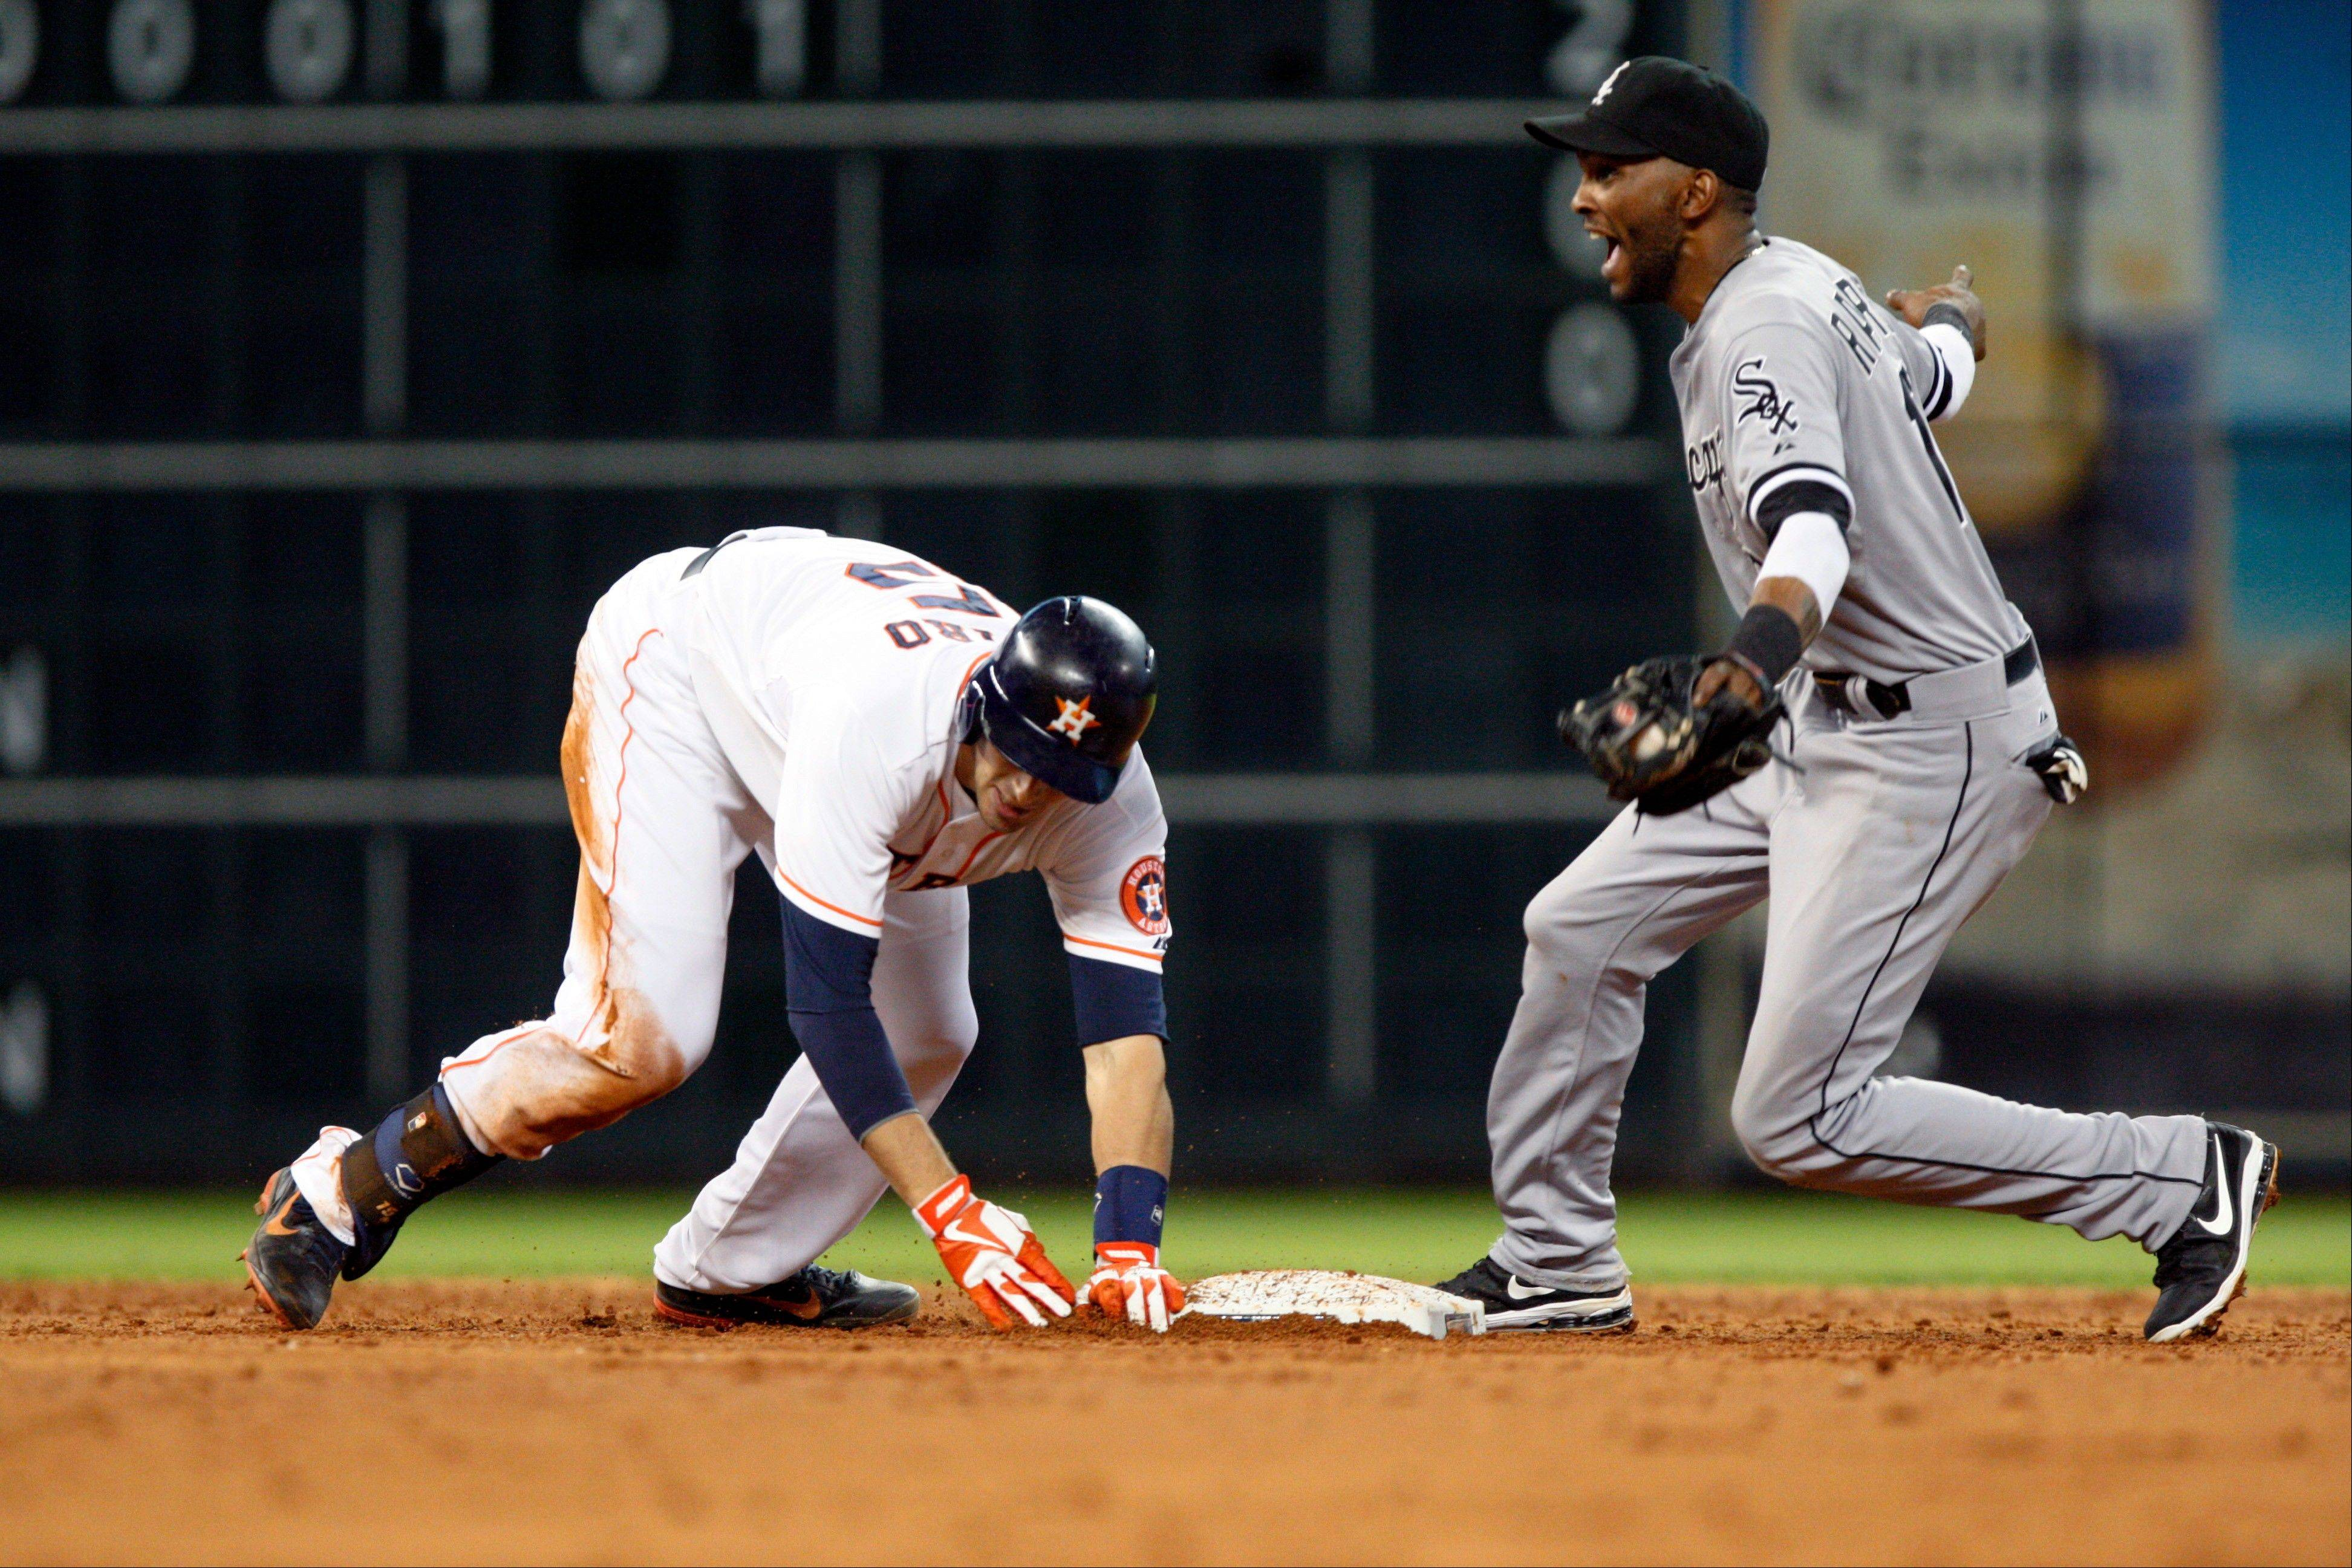 The Astros' Jason Castro eludes the tag of Alexei Ramirez in the third inning Monday in Houston.